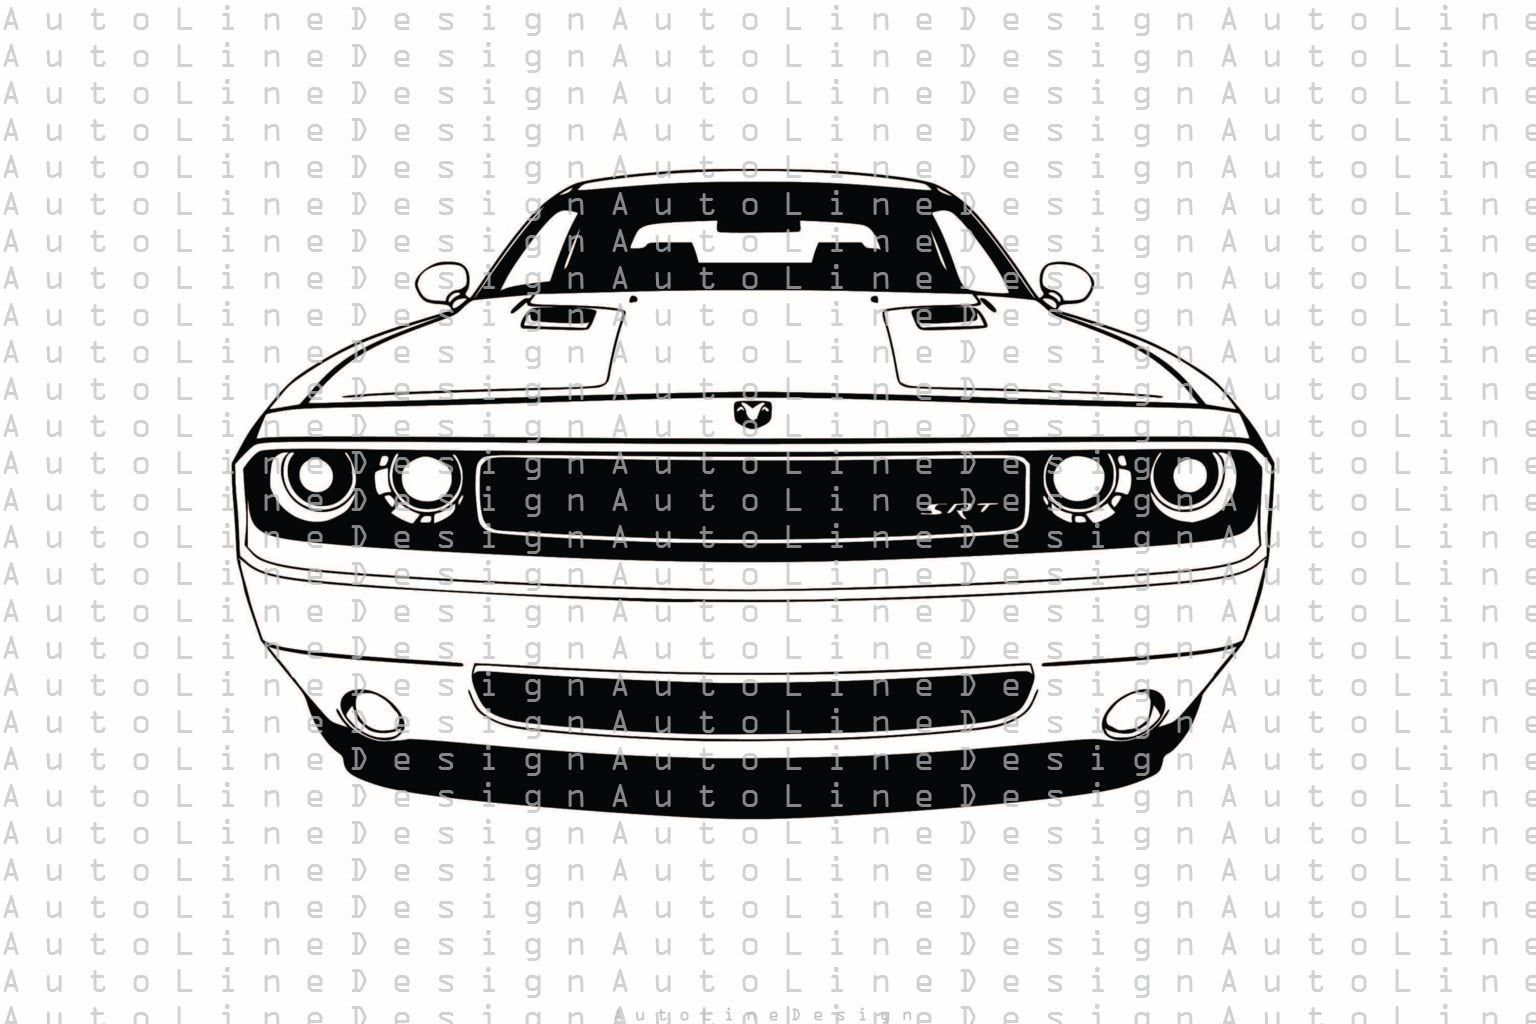 Dodge Challenger Front View Svg Pdf Dxf Png Eps Illustration Etsy In 2021 Dodge Challenger Challenger Car Drawings